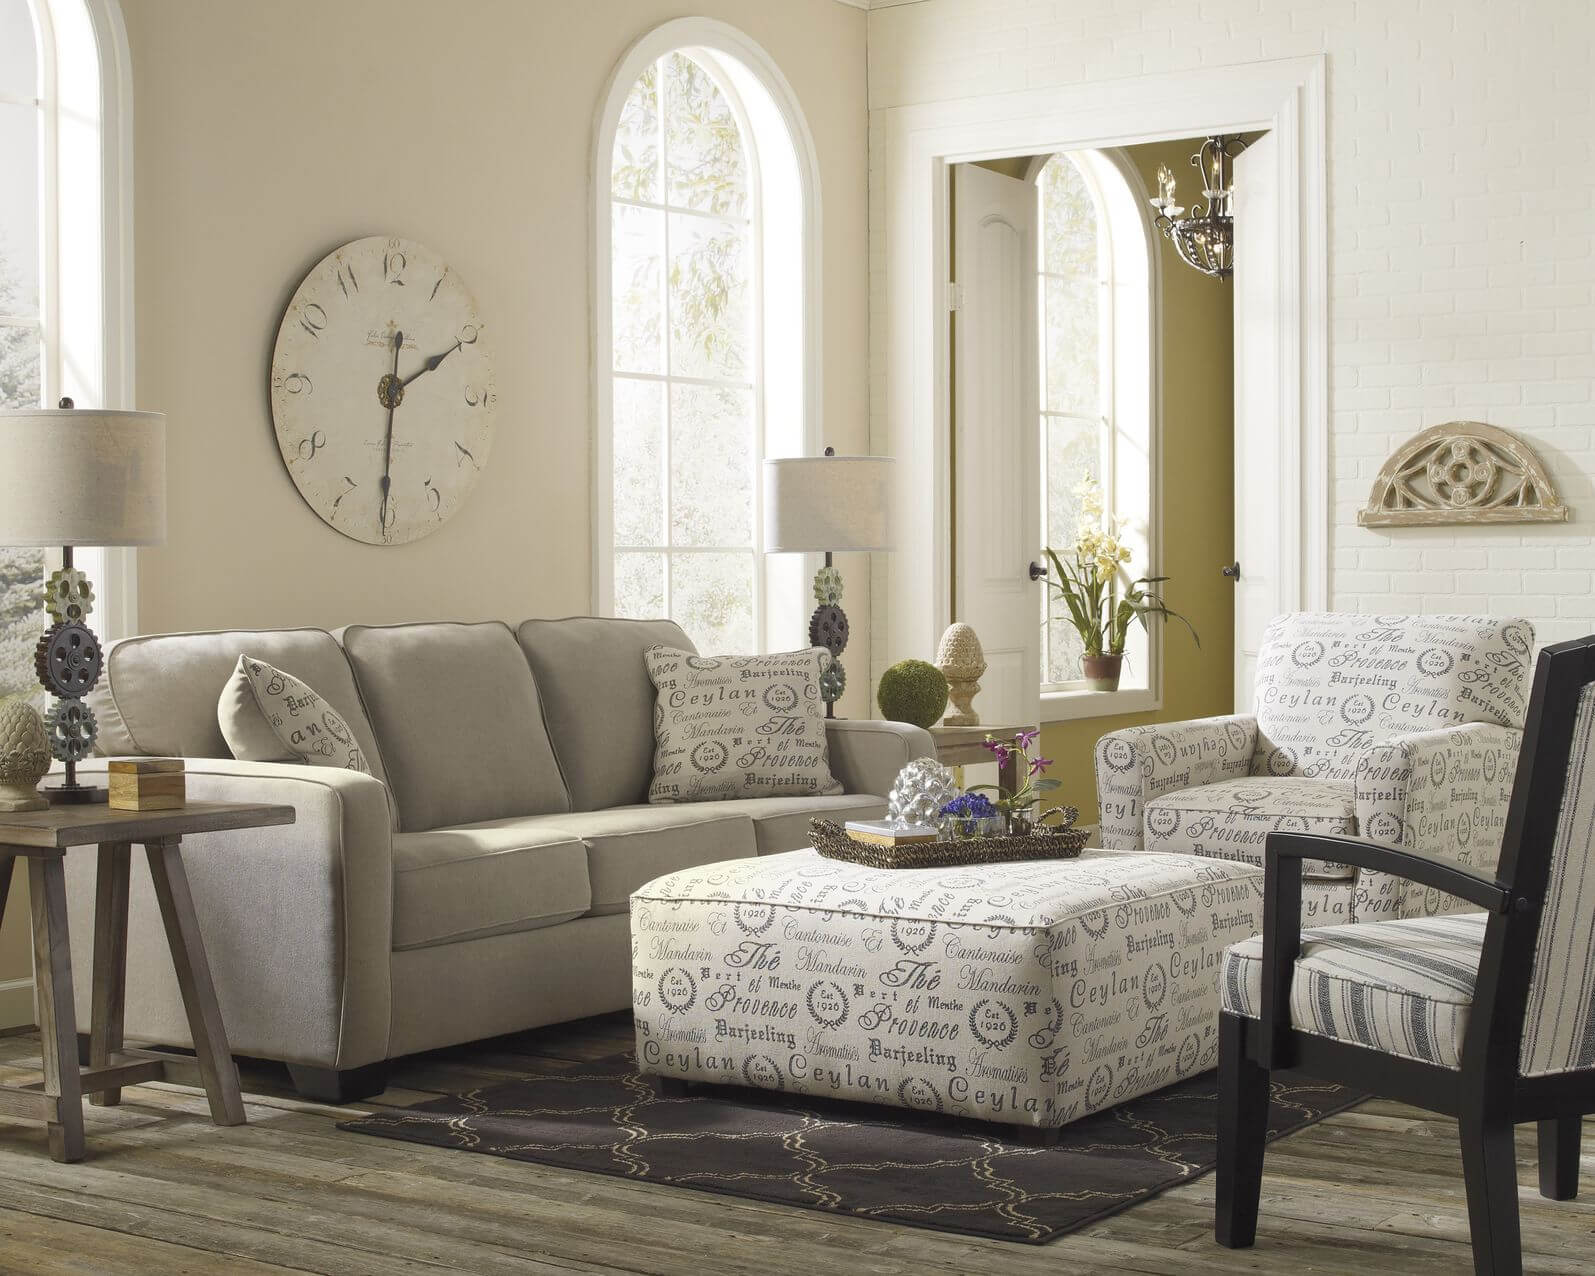 Fullsize Of White Armchair And Ottoman